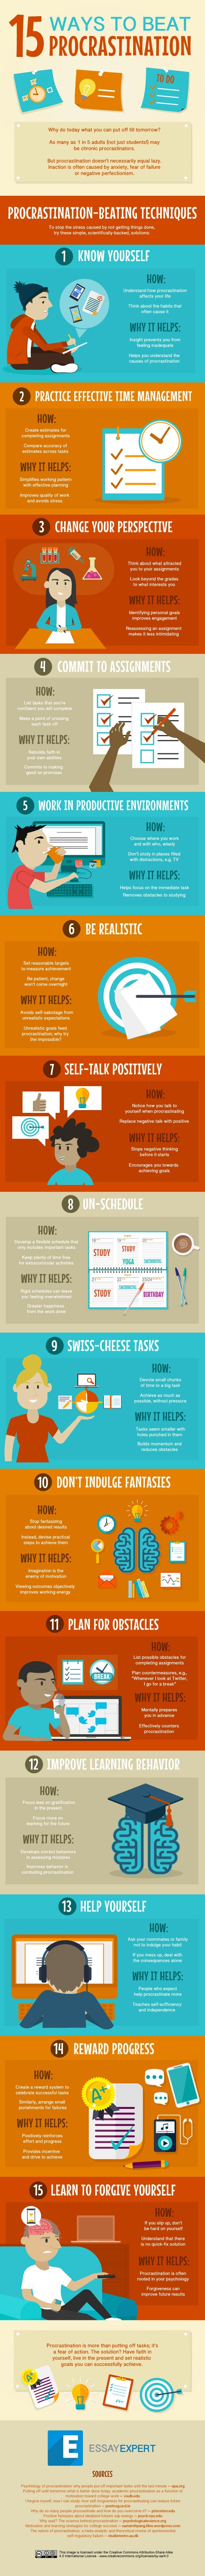 ways to overcome procrastination and get stuff done infographic 15 ways to overcome procrastination and get stuff done infographic